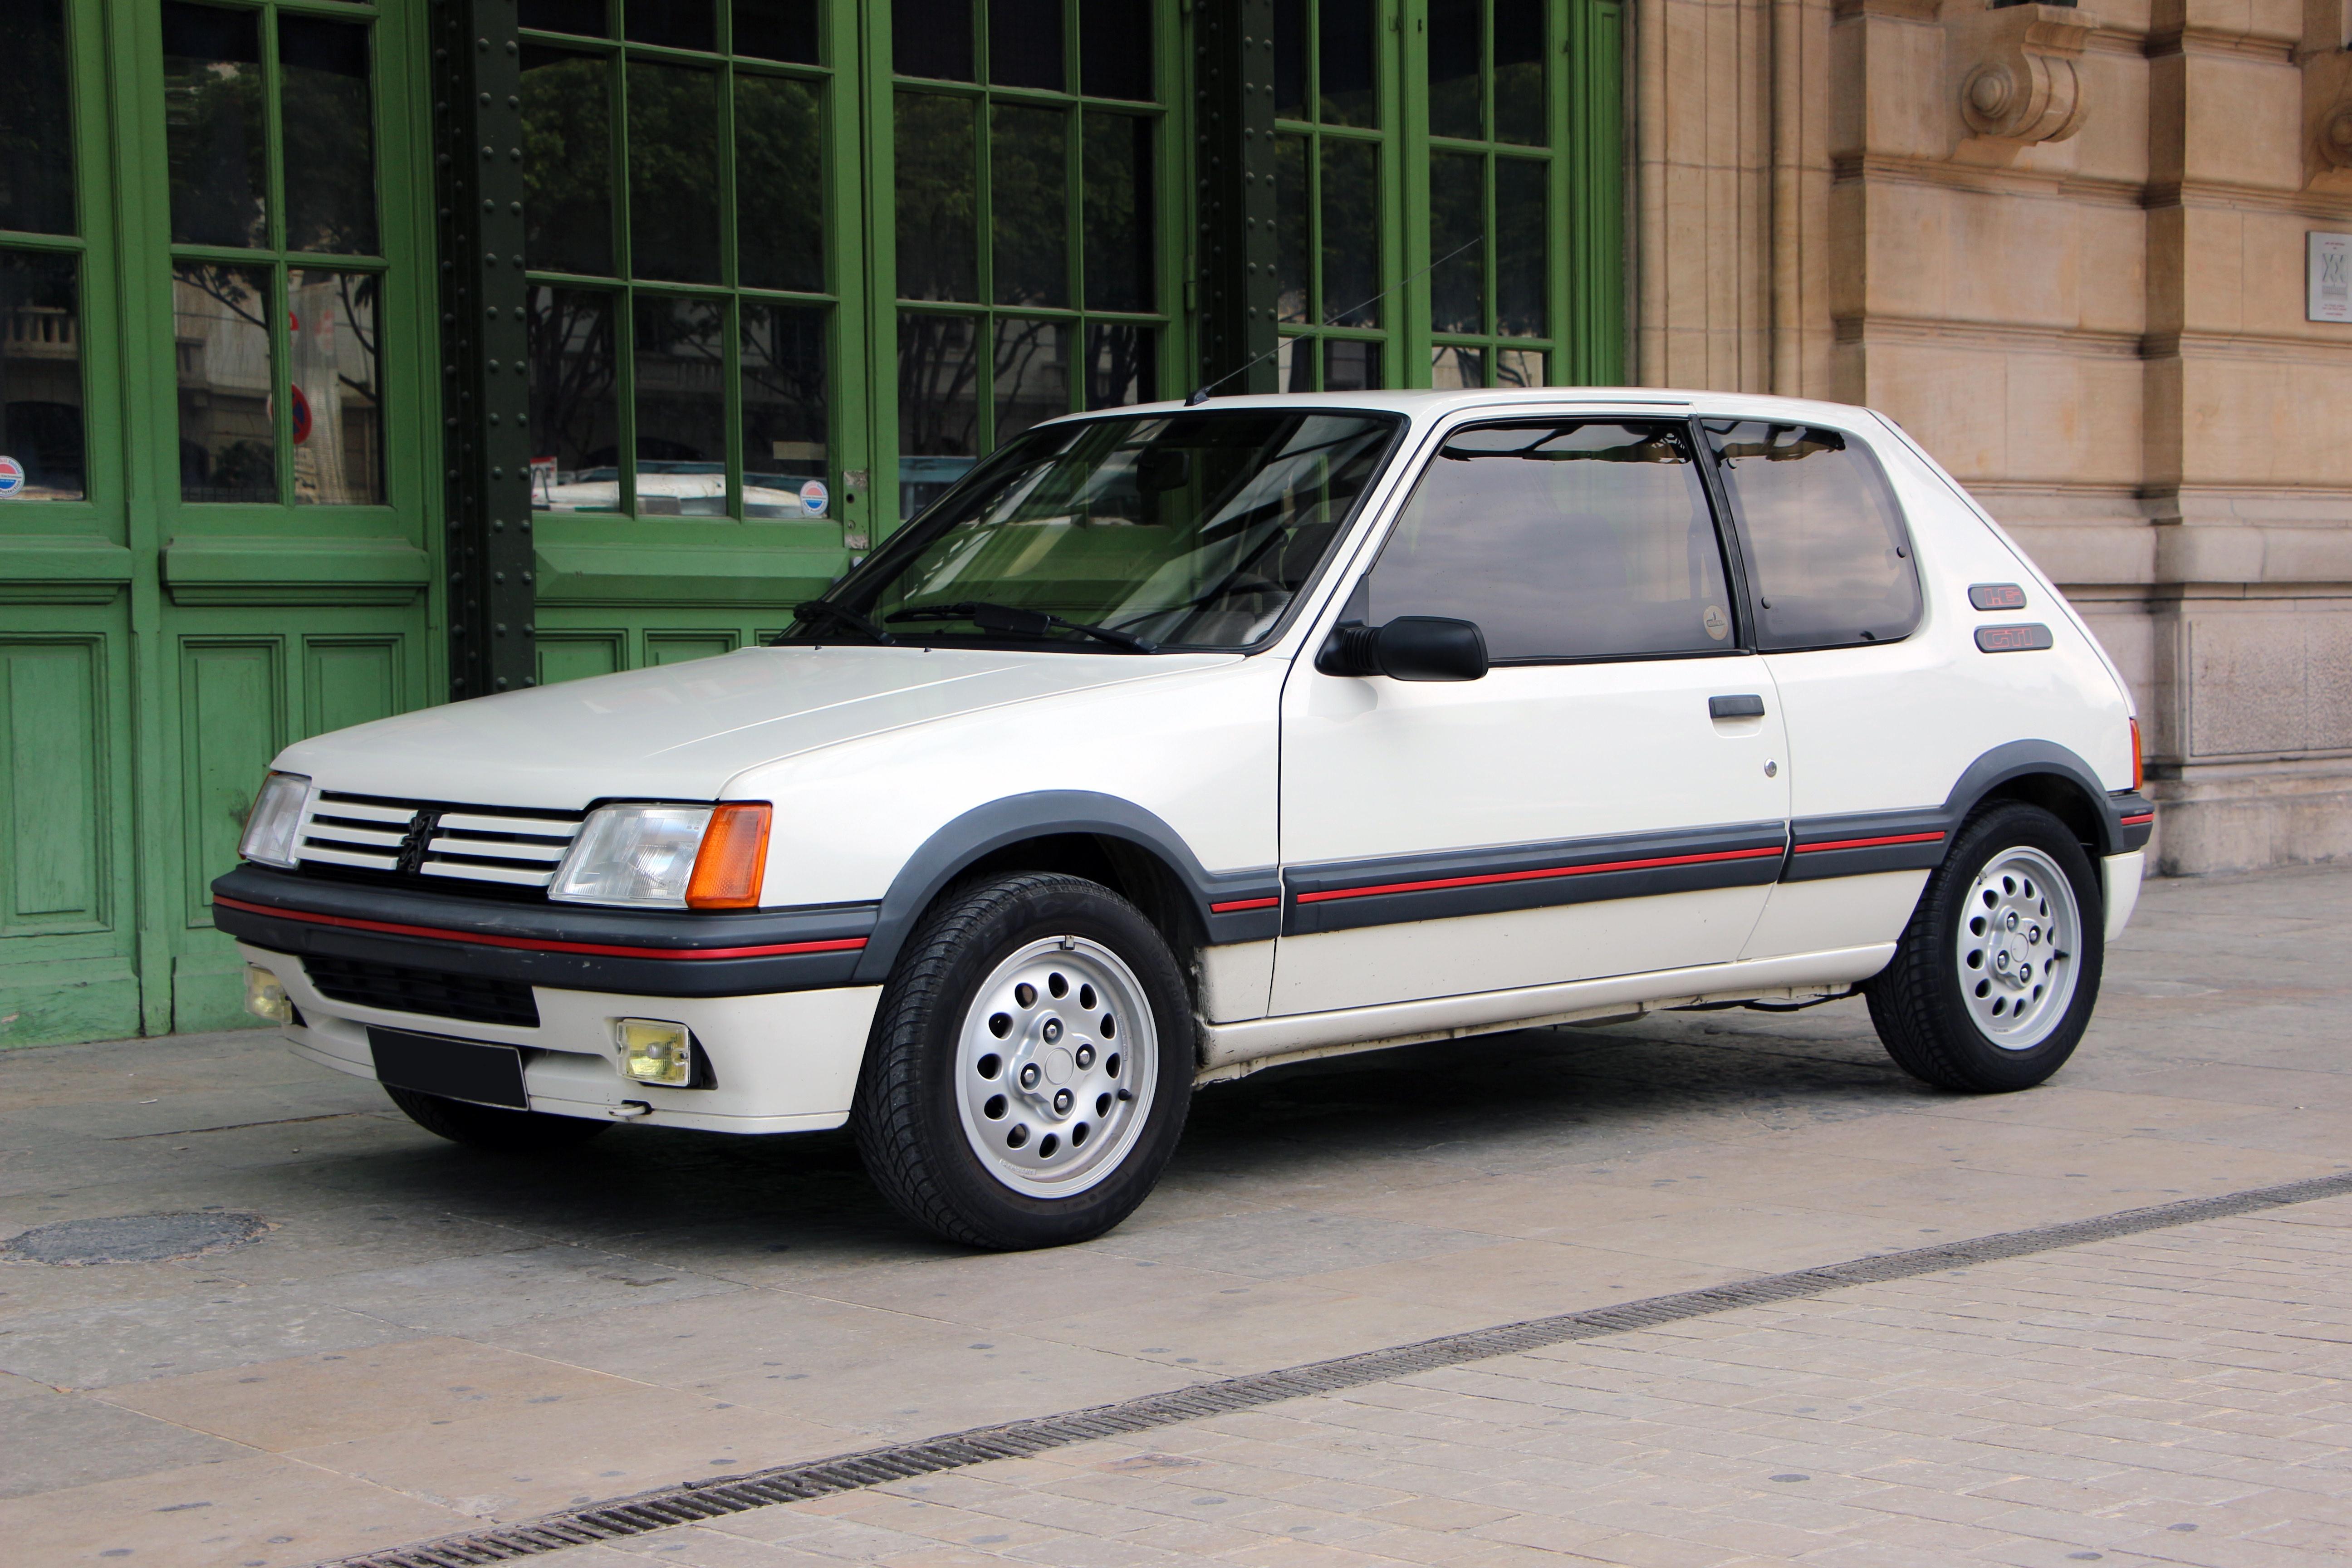 1987 peugeot 205 gti 1 6 classic driver market. Black Bedroom Furniture Sets. Home Design Ideas